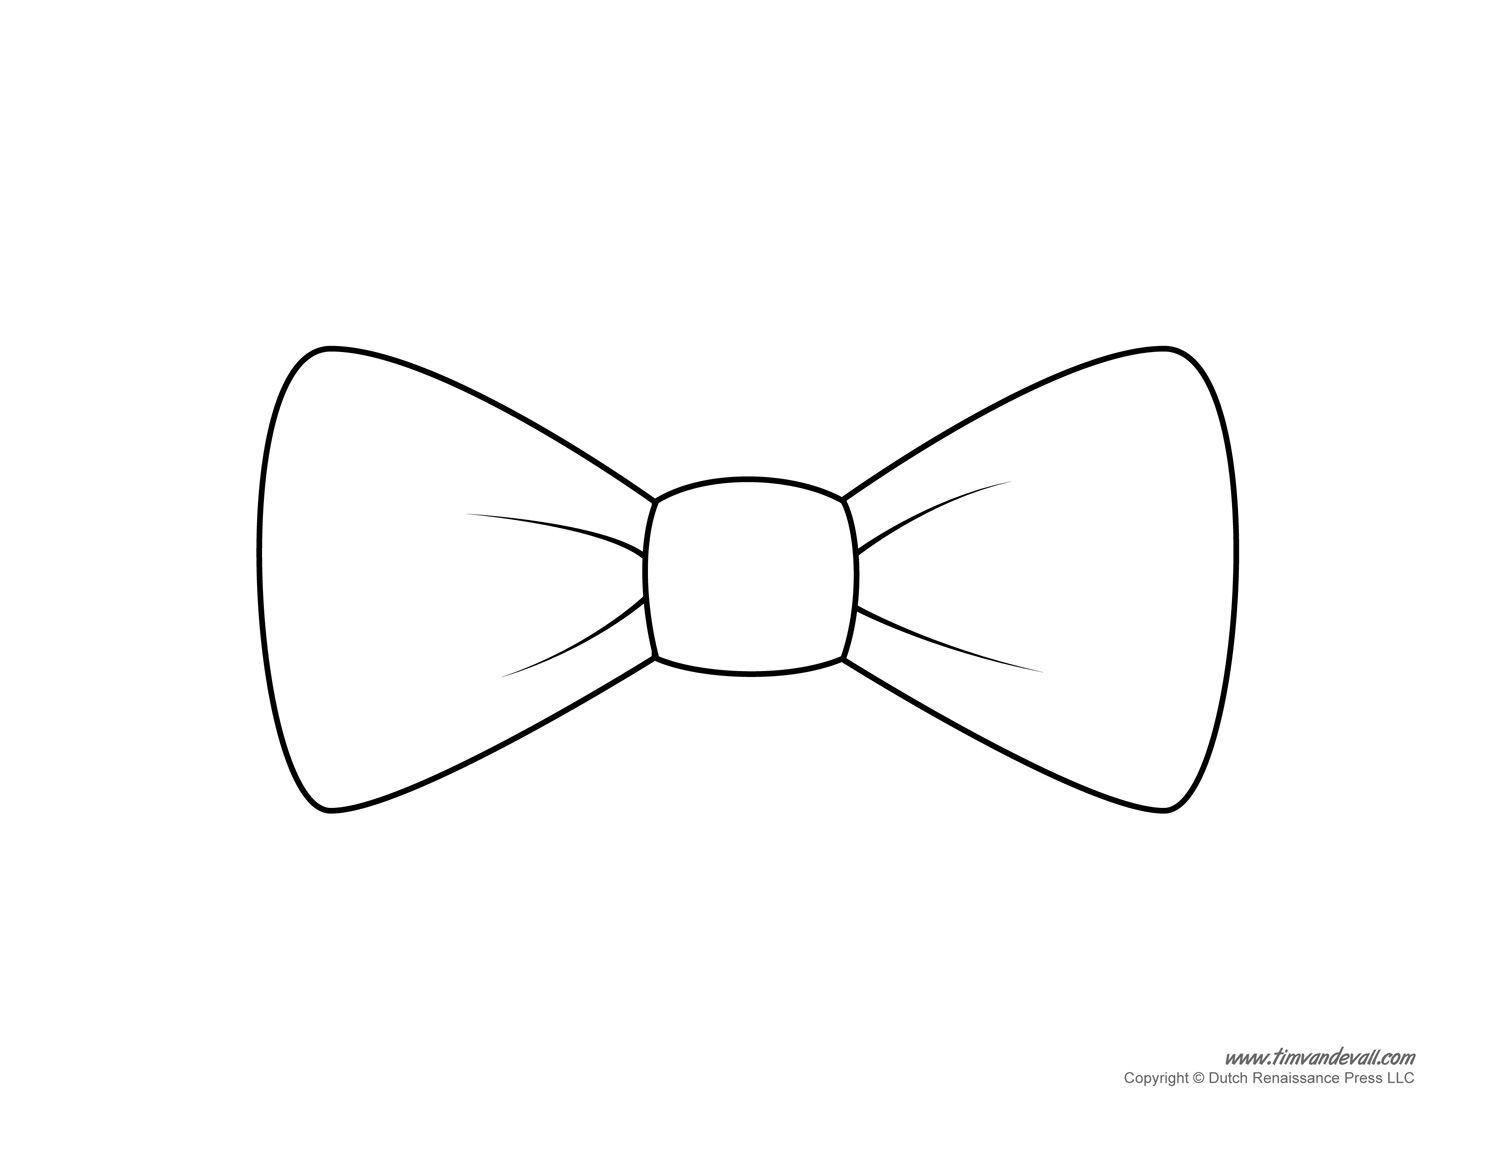 Bow Tie Drawing | Paper Bow Tie Templates |Bow Tie Printables - Free Printable Tie Template